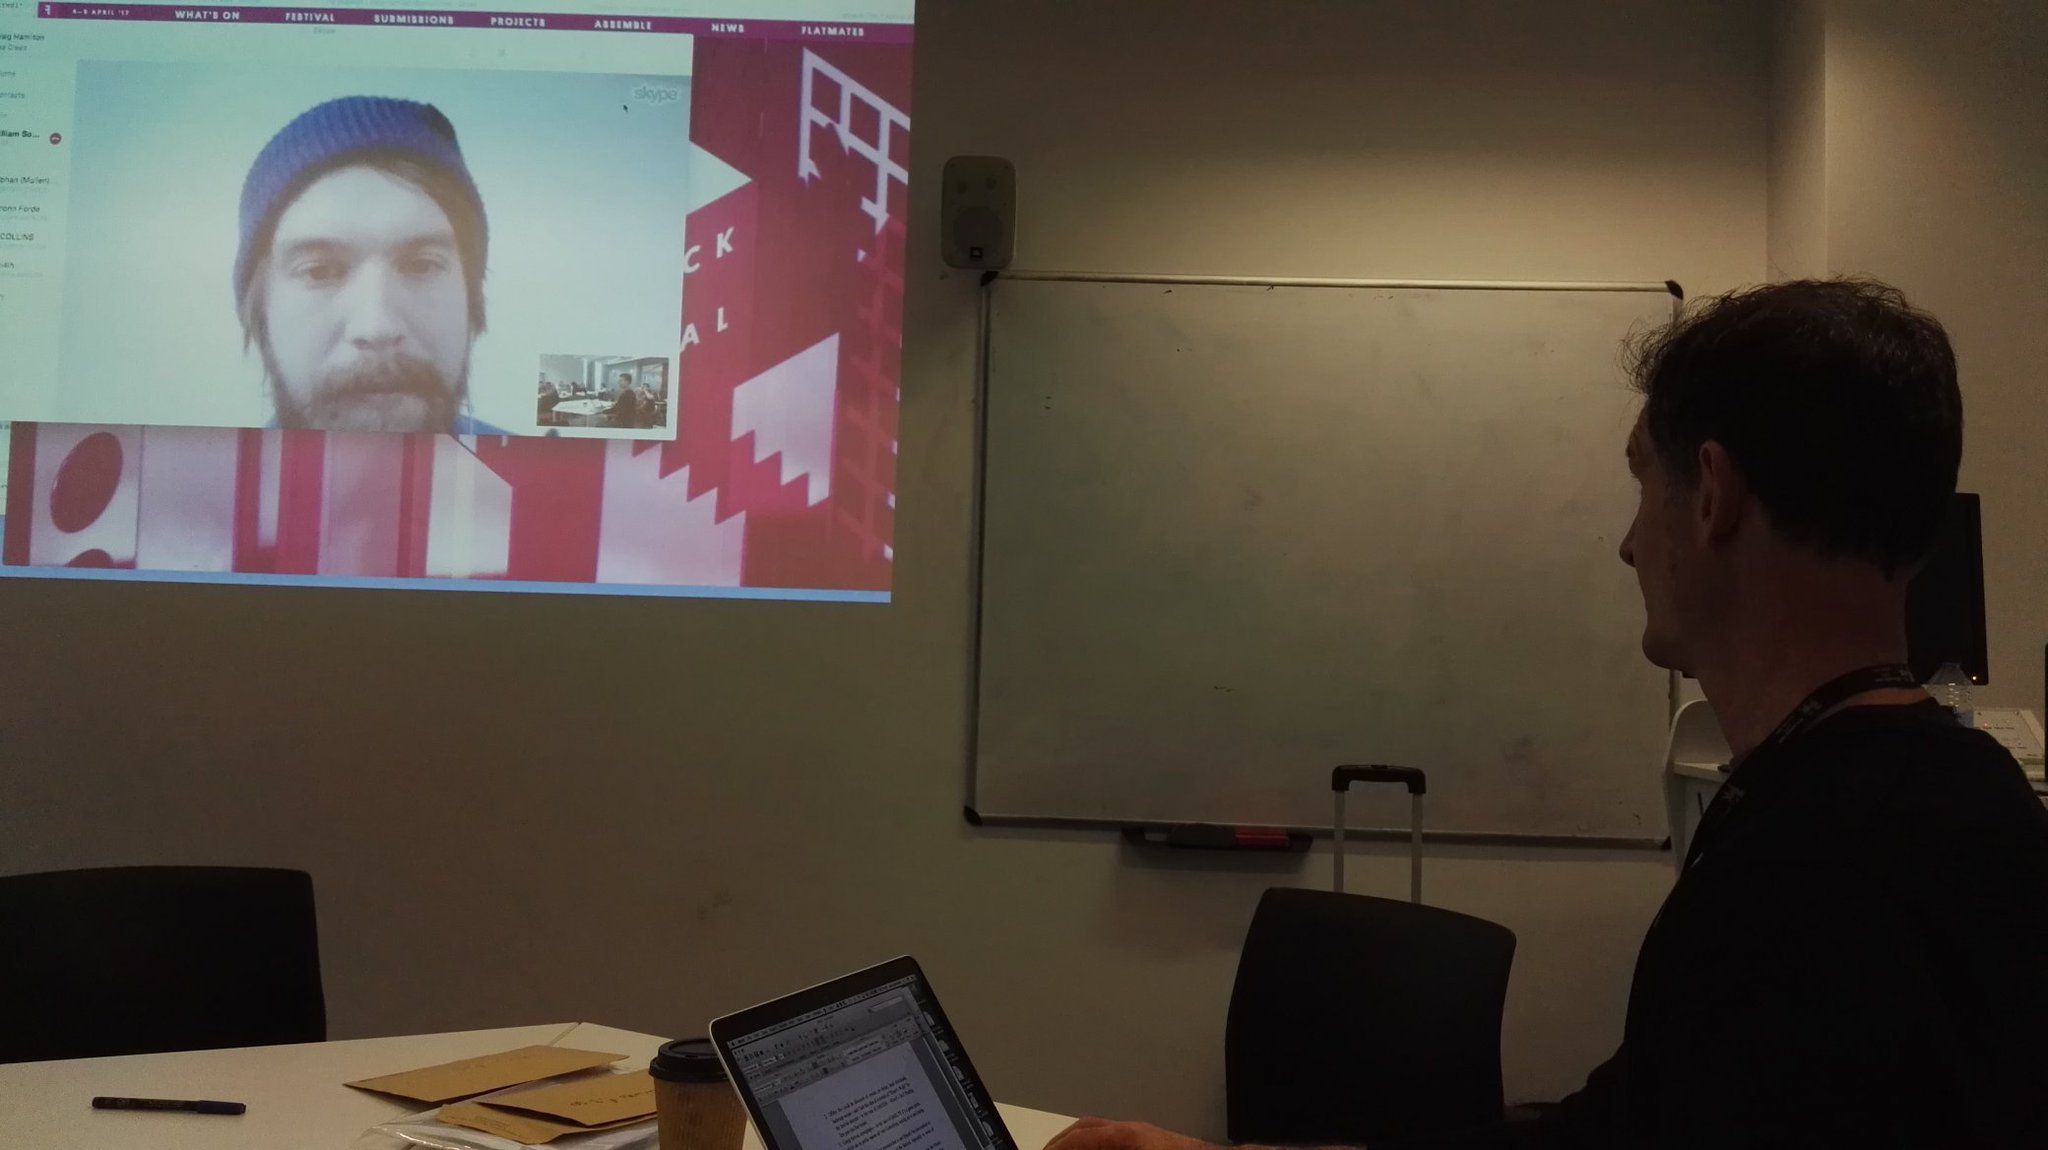 Day 2 of the music data hack at BCU with a live link to Sweeden #chimemdh https://t.co/5I2XSmsuid